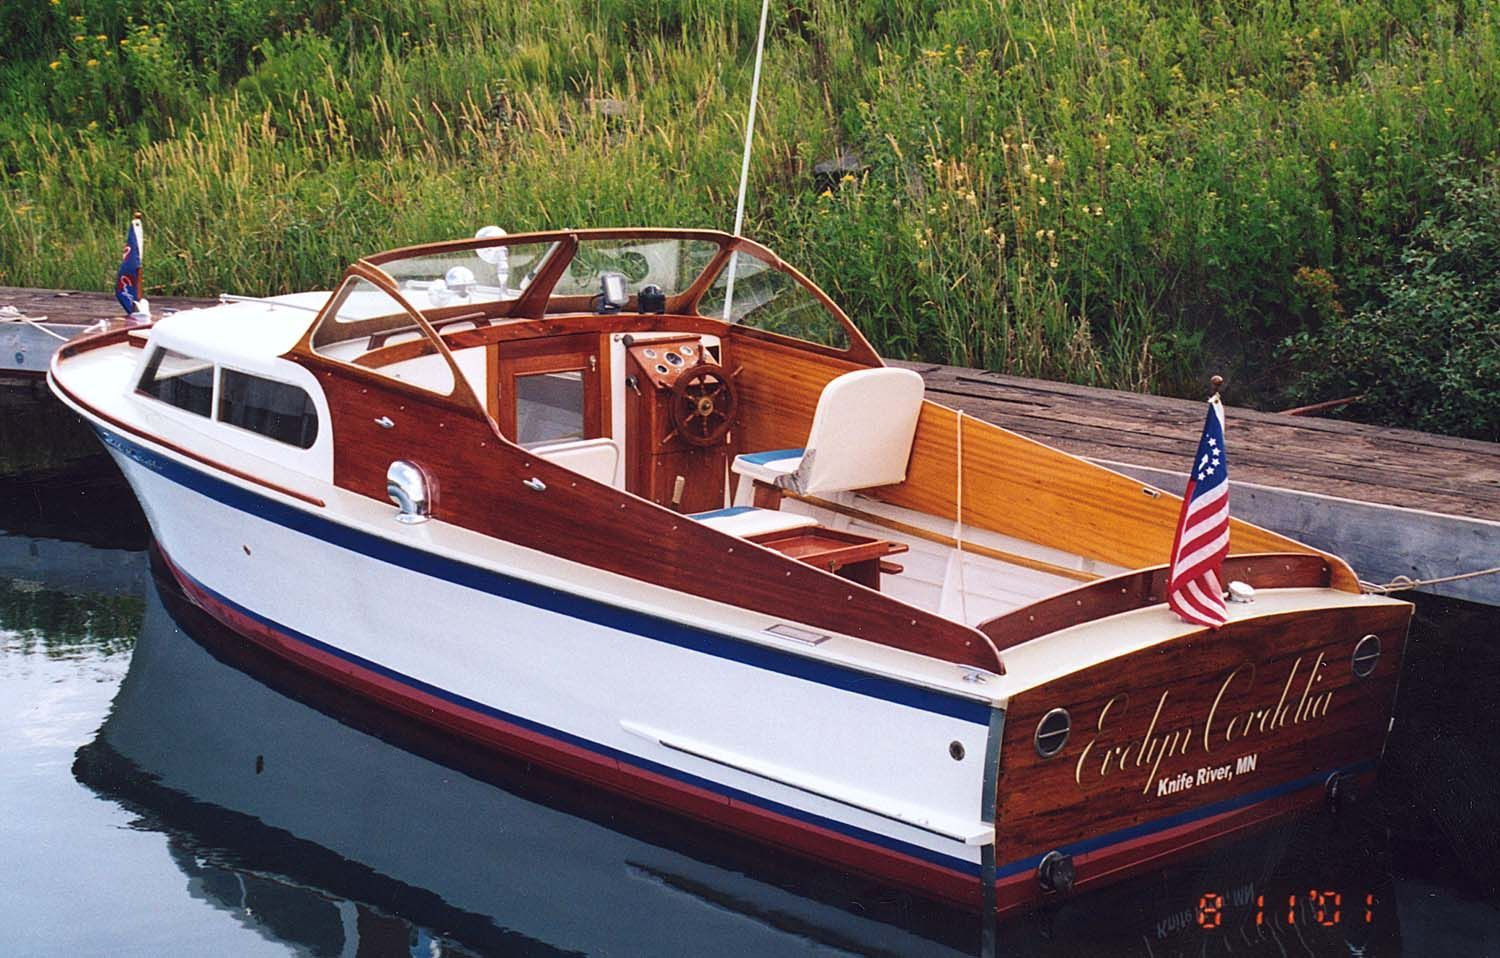 1947 Chris Craft Cabin Cruiser  Gorgeous! | wanderlust